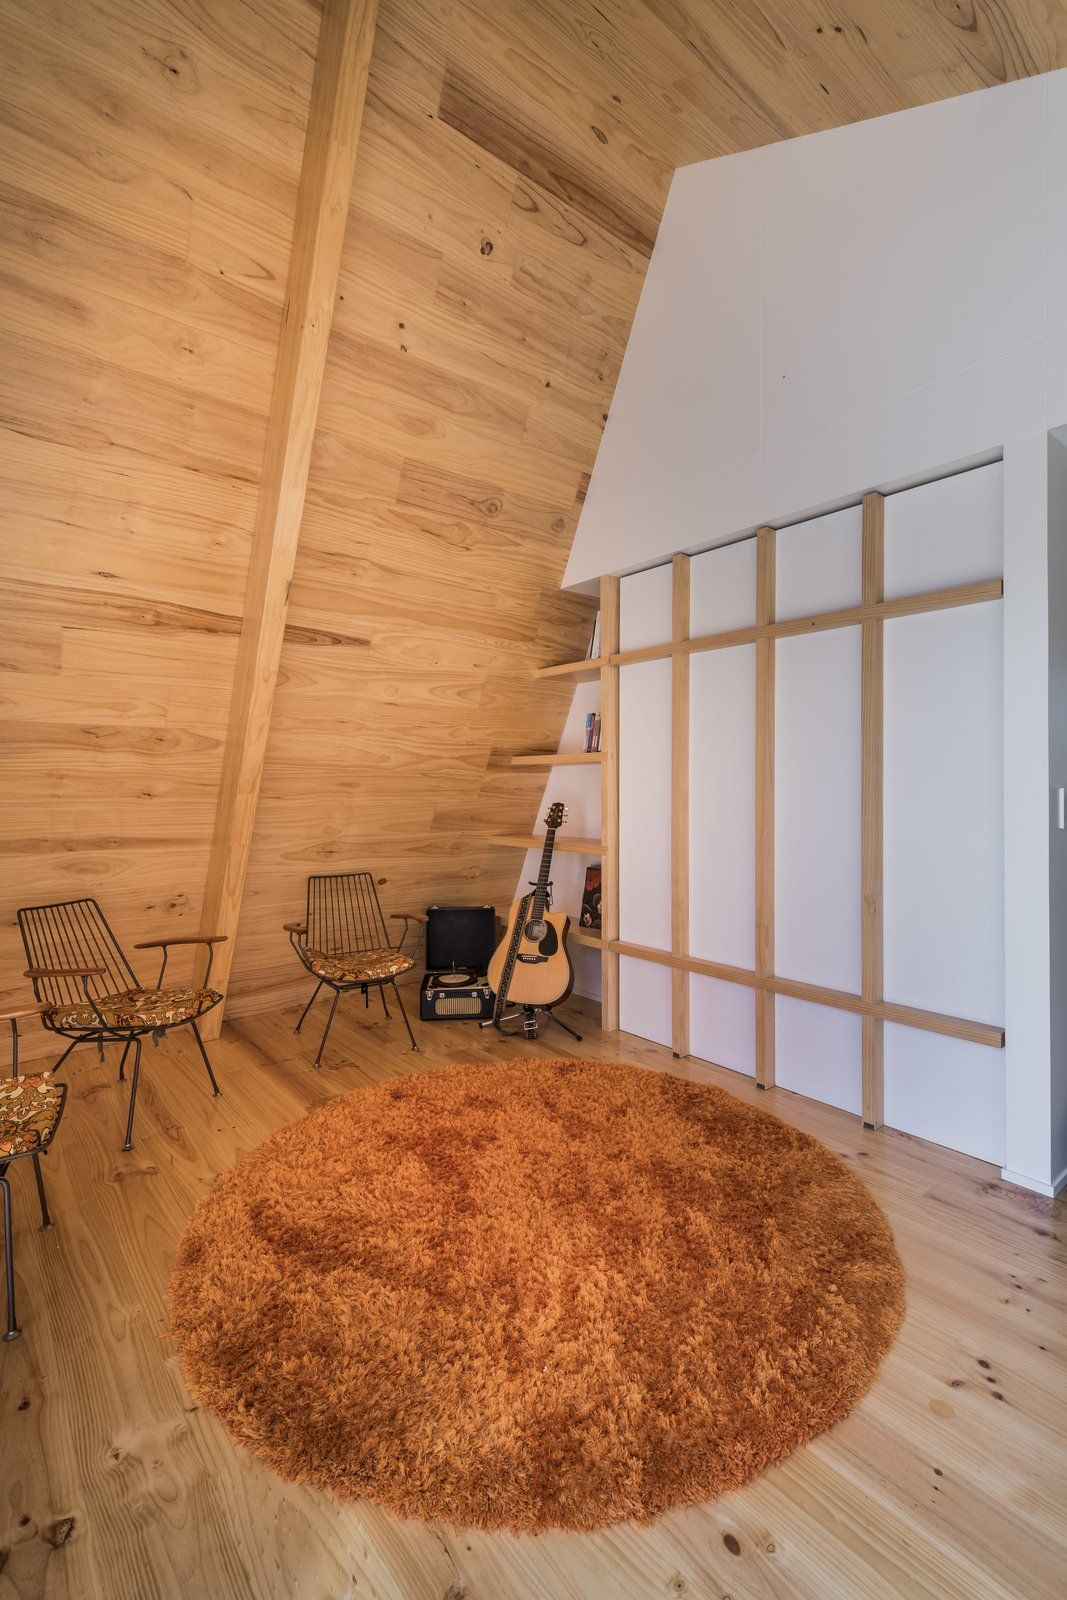 Living room chair light hardwood floor rug floor and shelves cymon his wife angela and their two teenage daughters furnished the home with objects